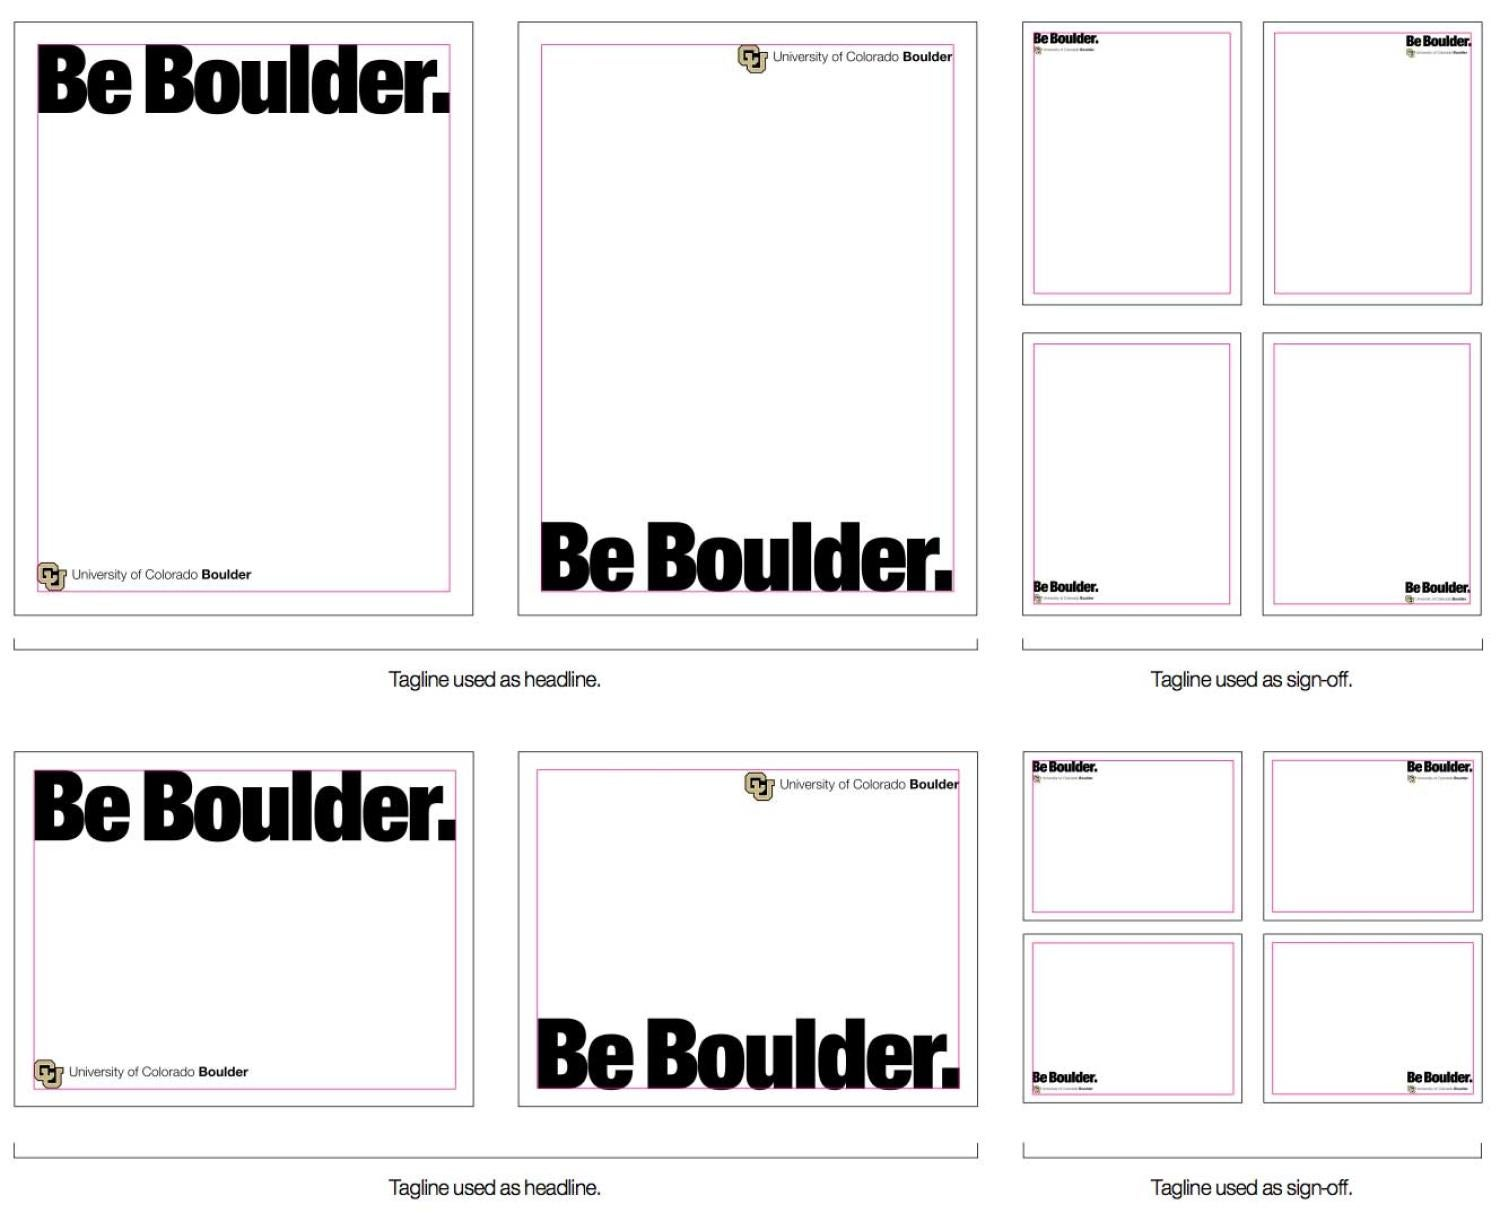 Examples of Be Boulder print layouts